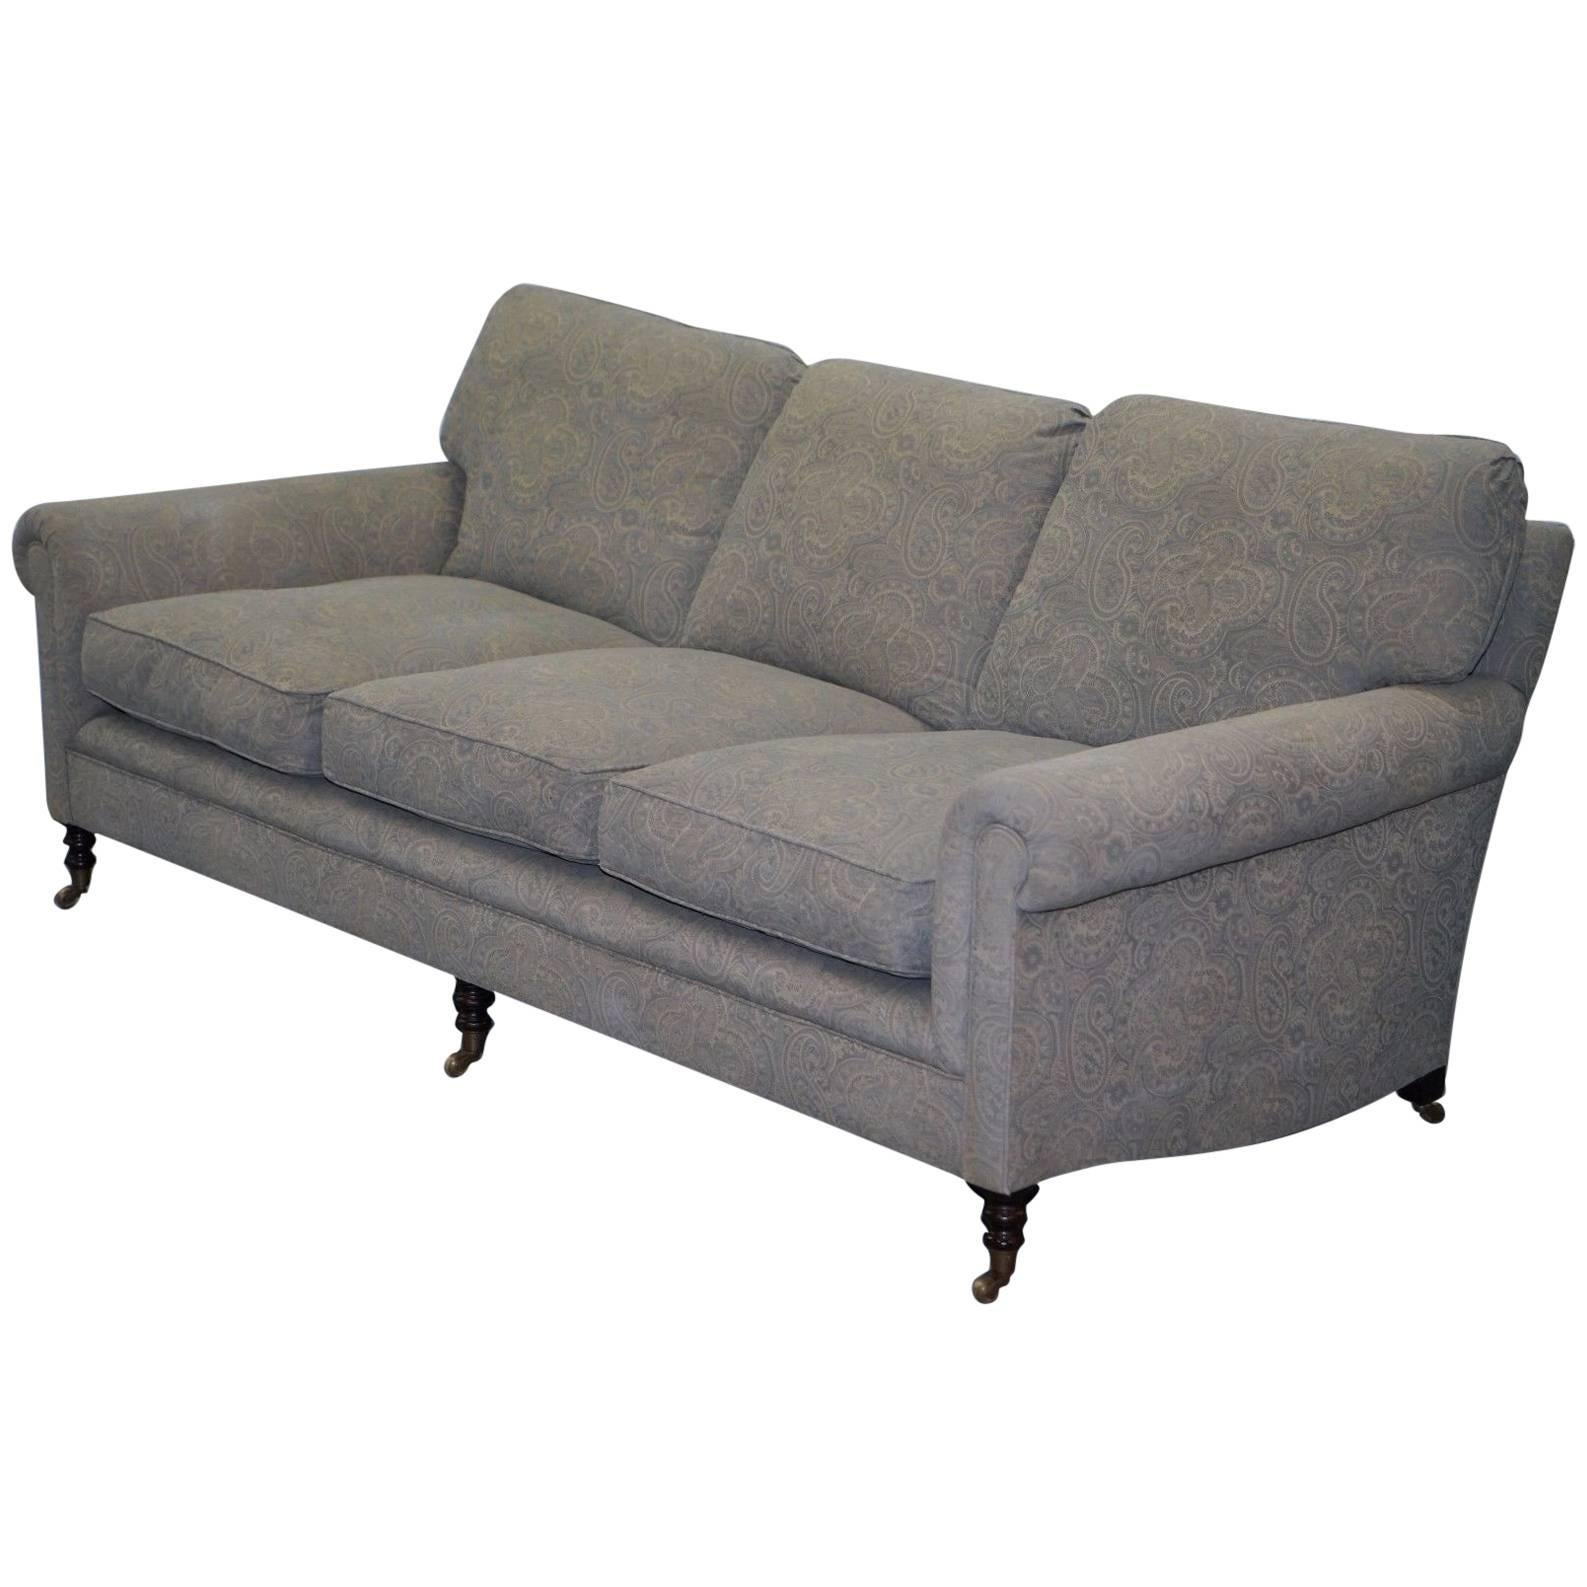 George Smith Signature Full Scroll Arm Loose Back Feather Filled Sofa